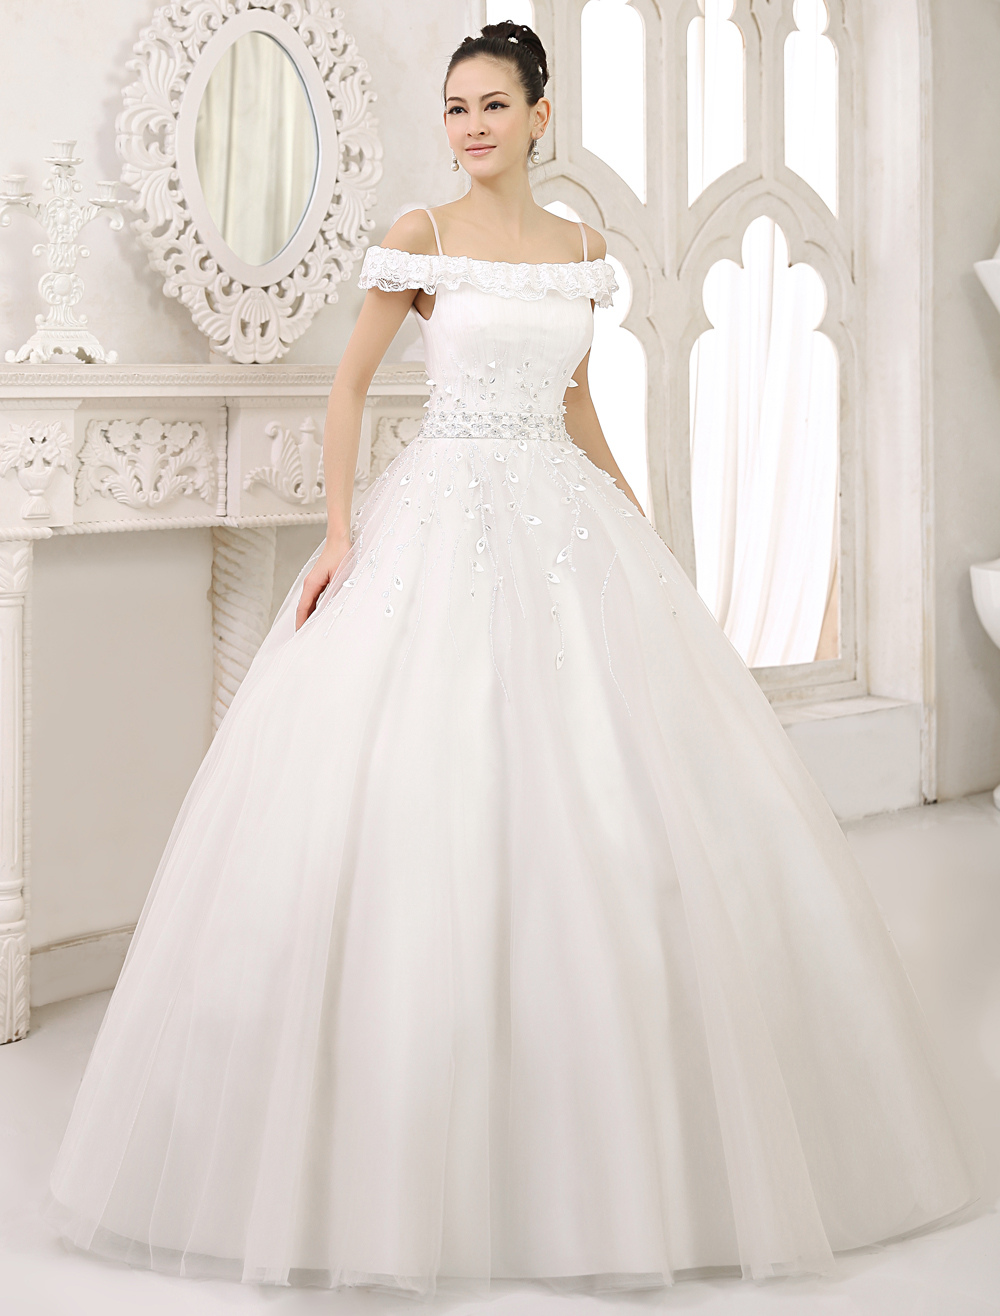 Glamorous Floor-Length Ivory Lace Ball Gown Wedding Dress For Bride with Off-The-Shoulder Spaghetti Strap Tulle